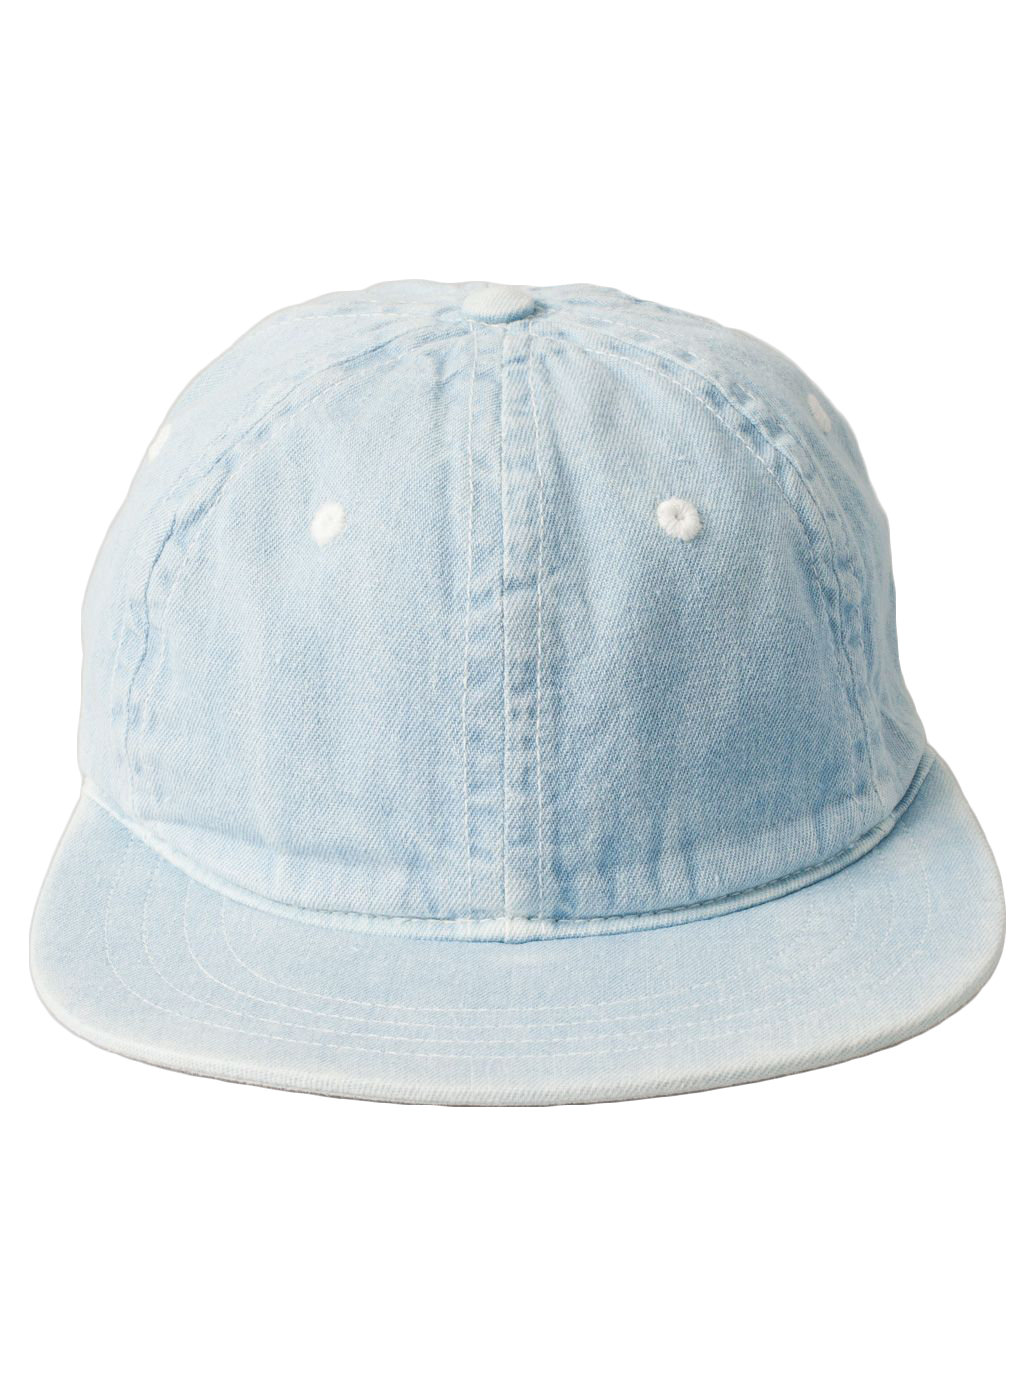 Unisex Denim Basic Cap  539cda695d7